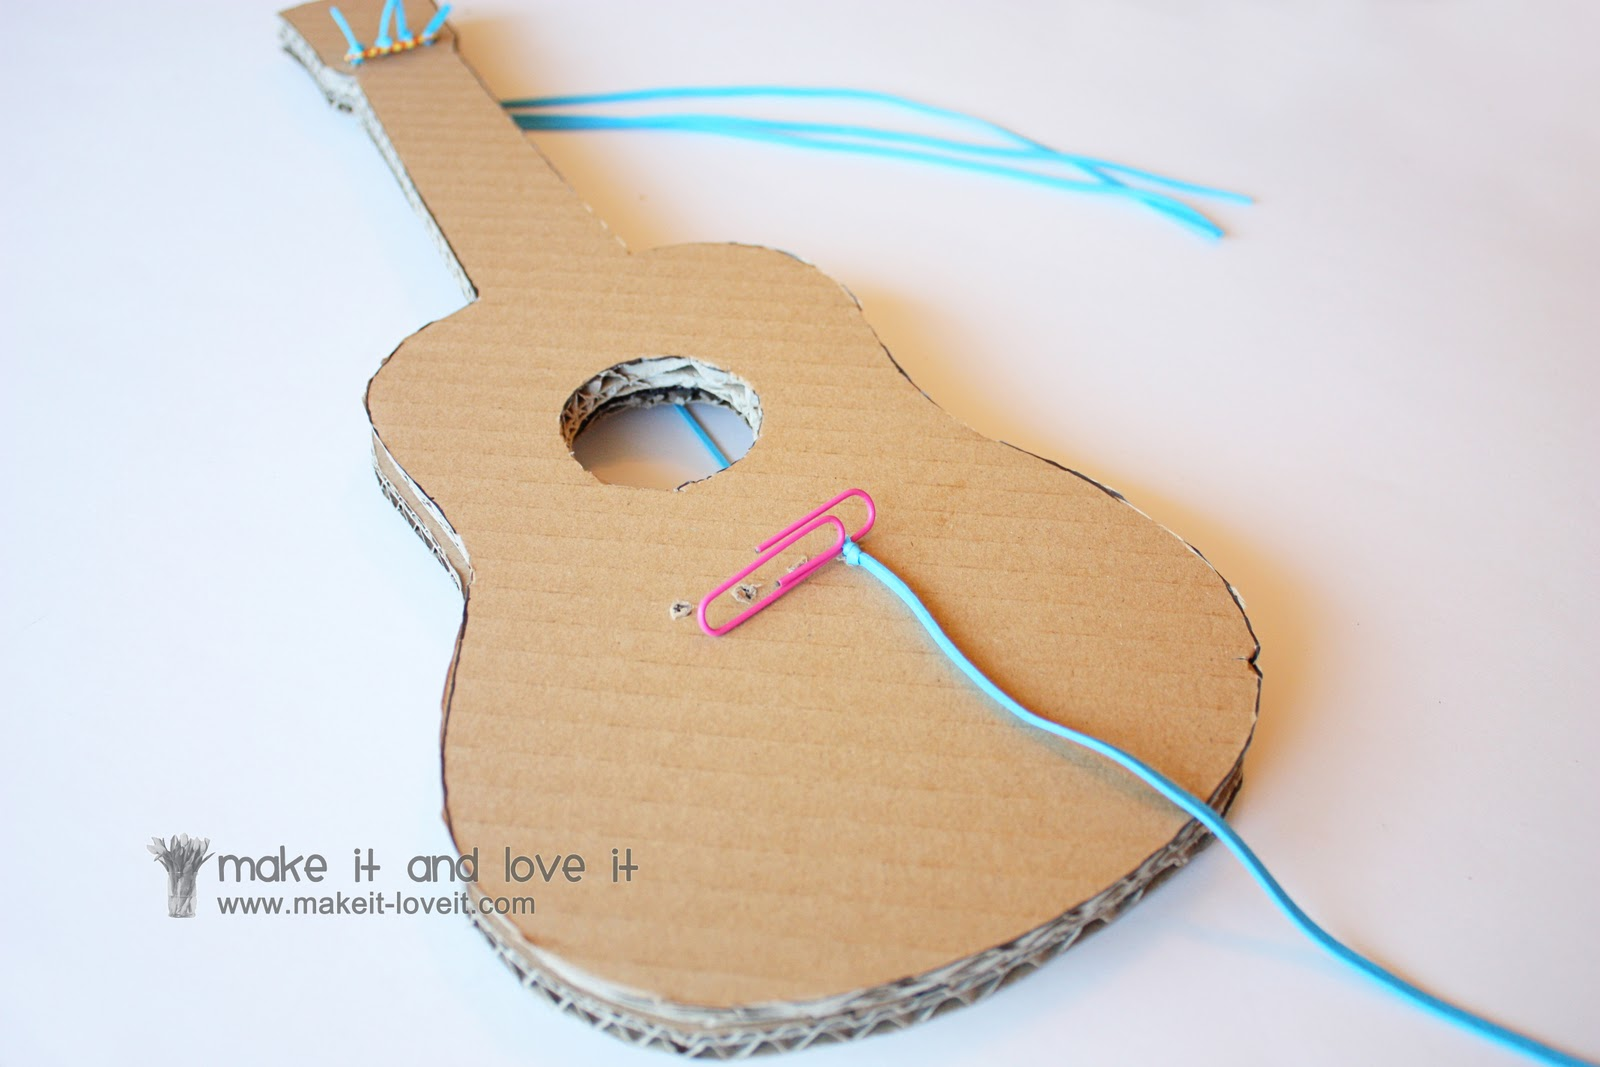 The Mister Make It And Love Series Cardboard Guitars Guitar Wiring Blog Diagrams Tips January 2011